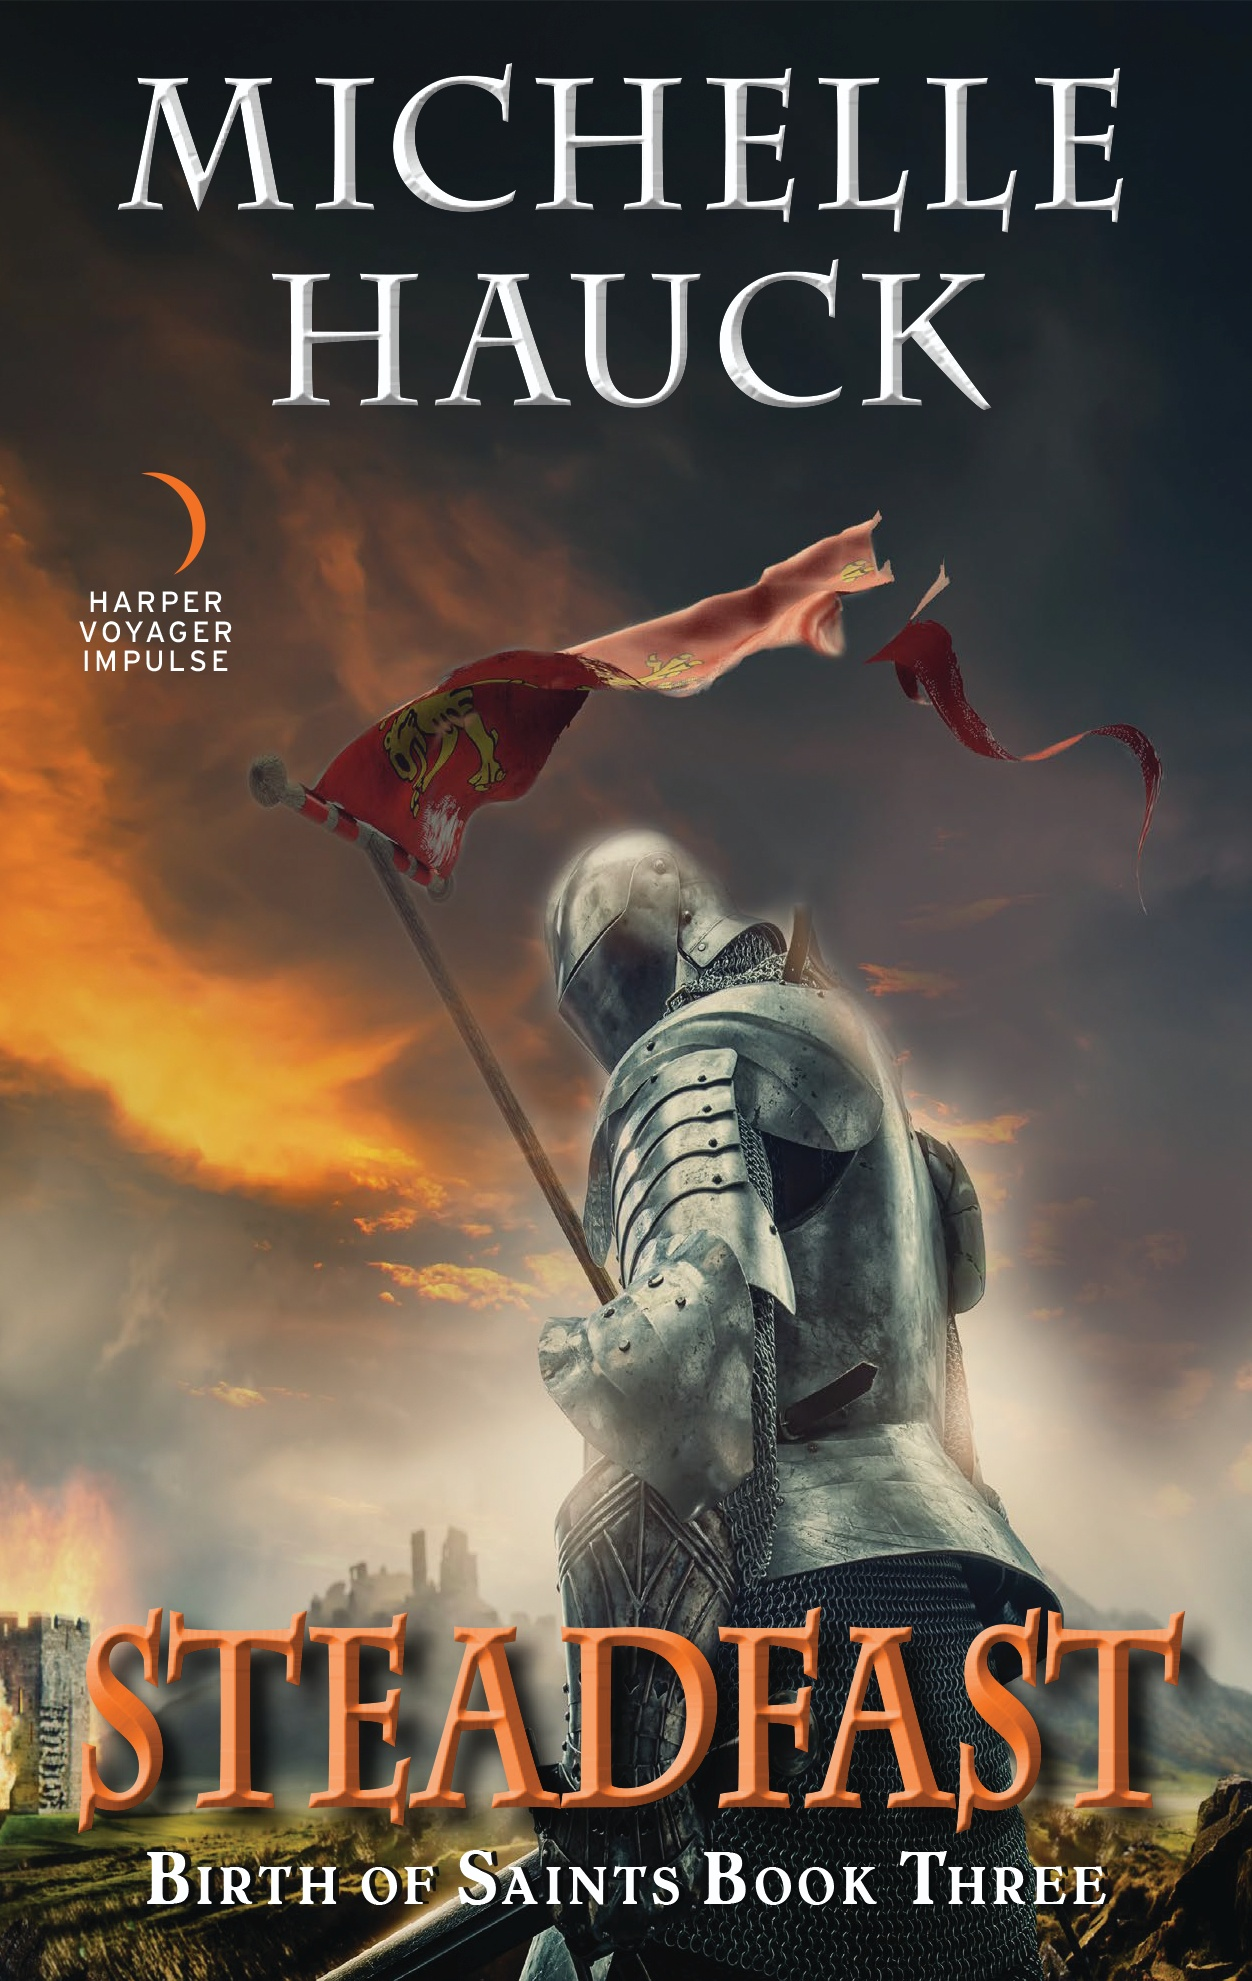 Saying Goodbye to a Series: Michelle Hauck on completing her Birth of Saints trilogy with STEADFAST